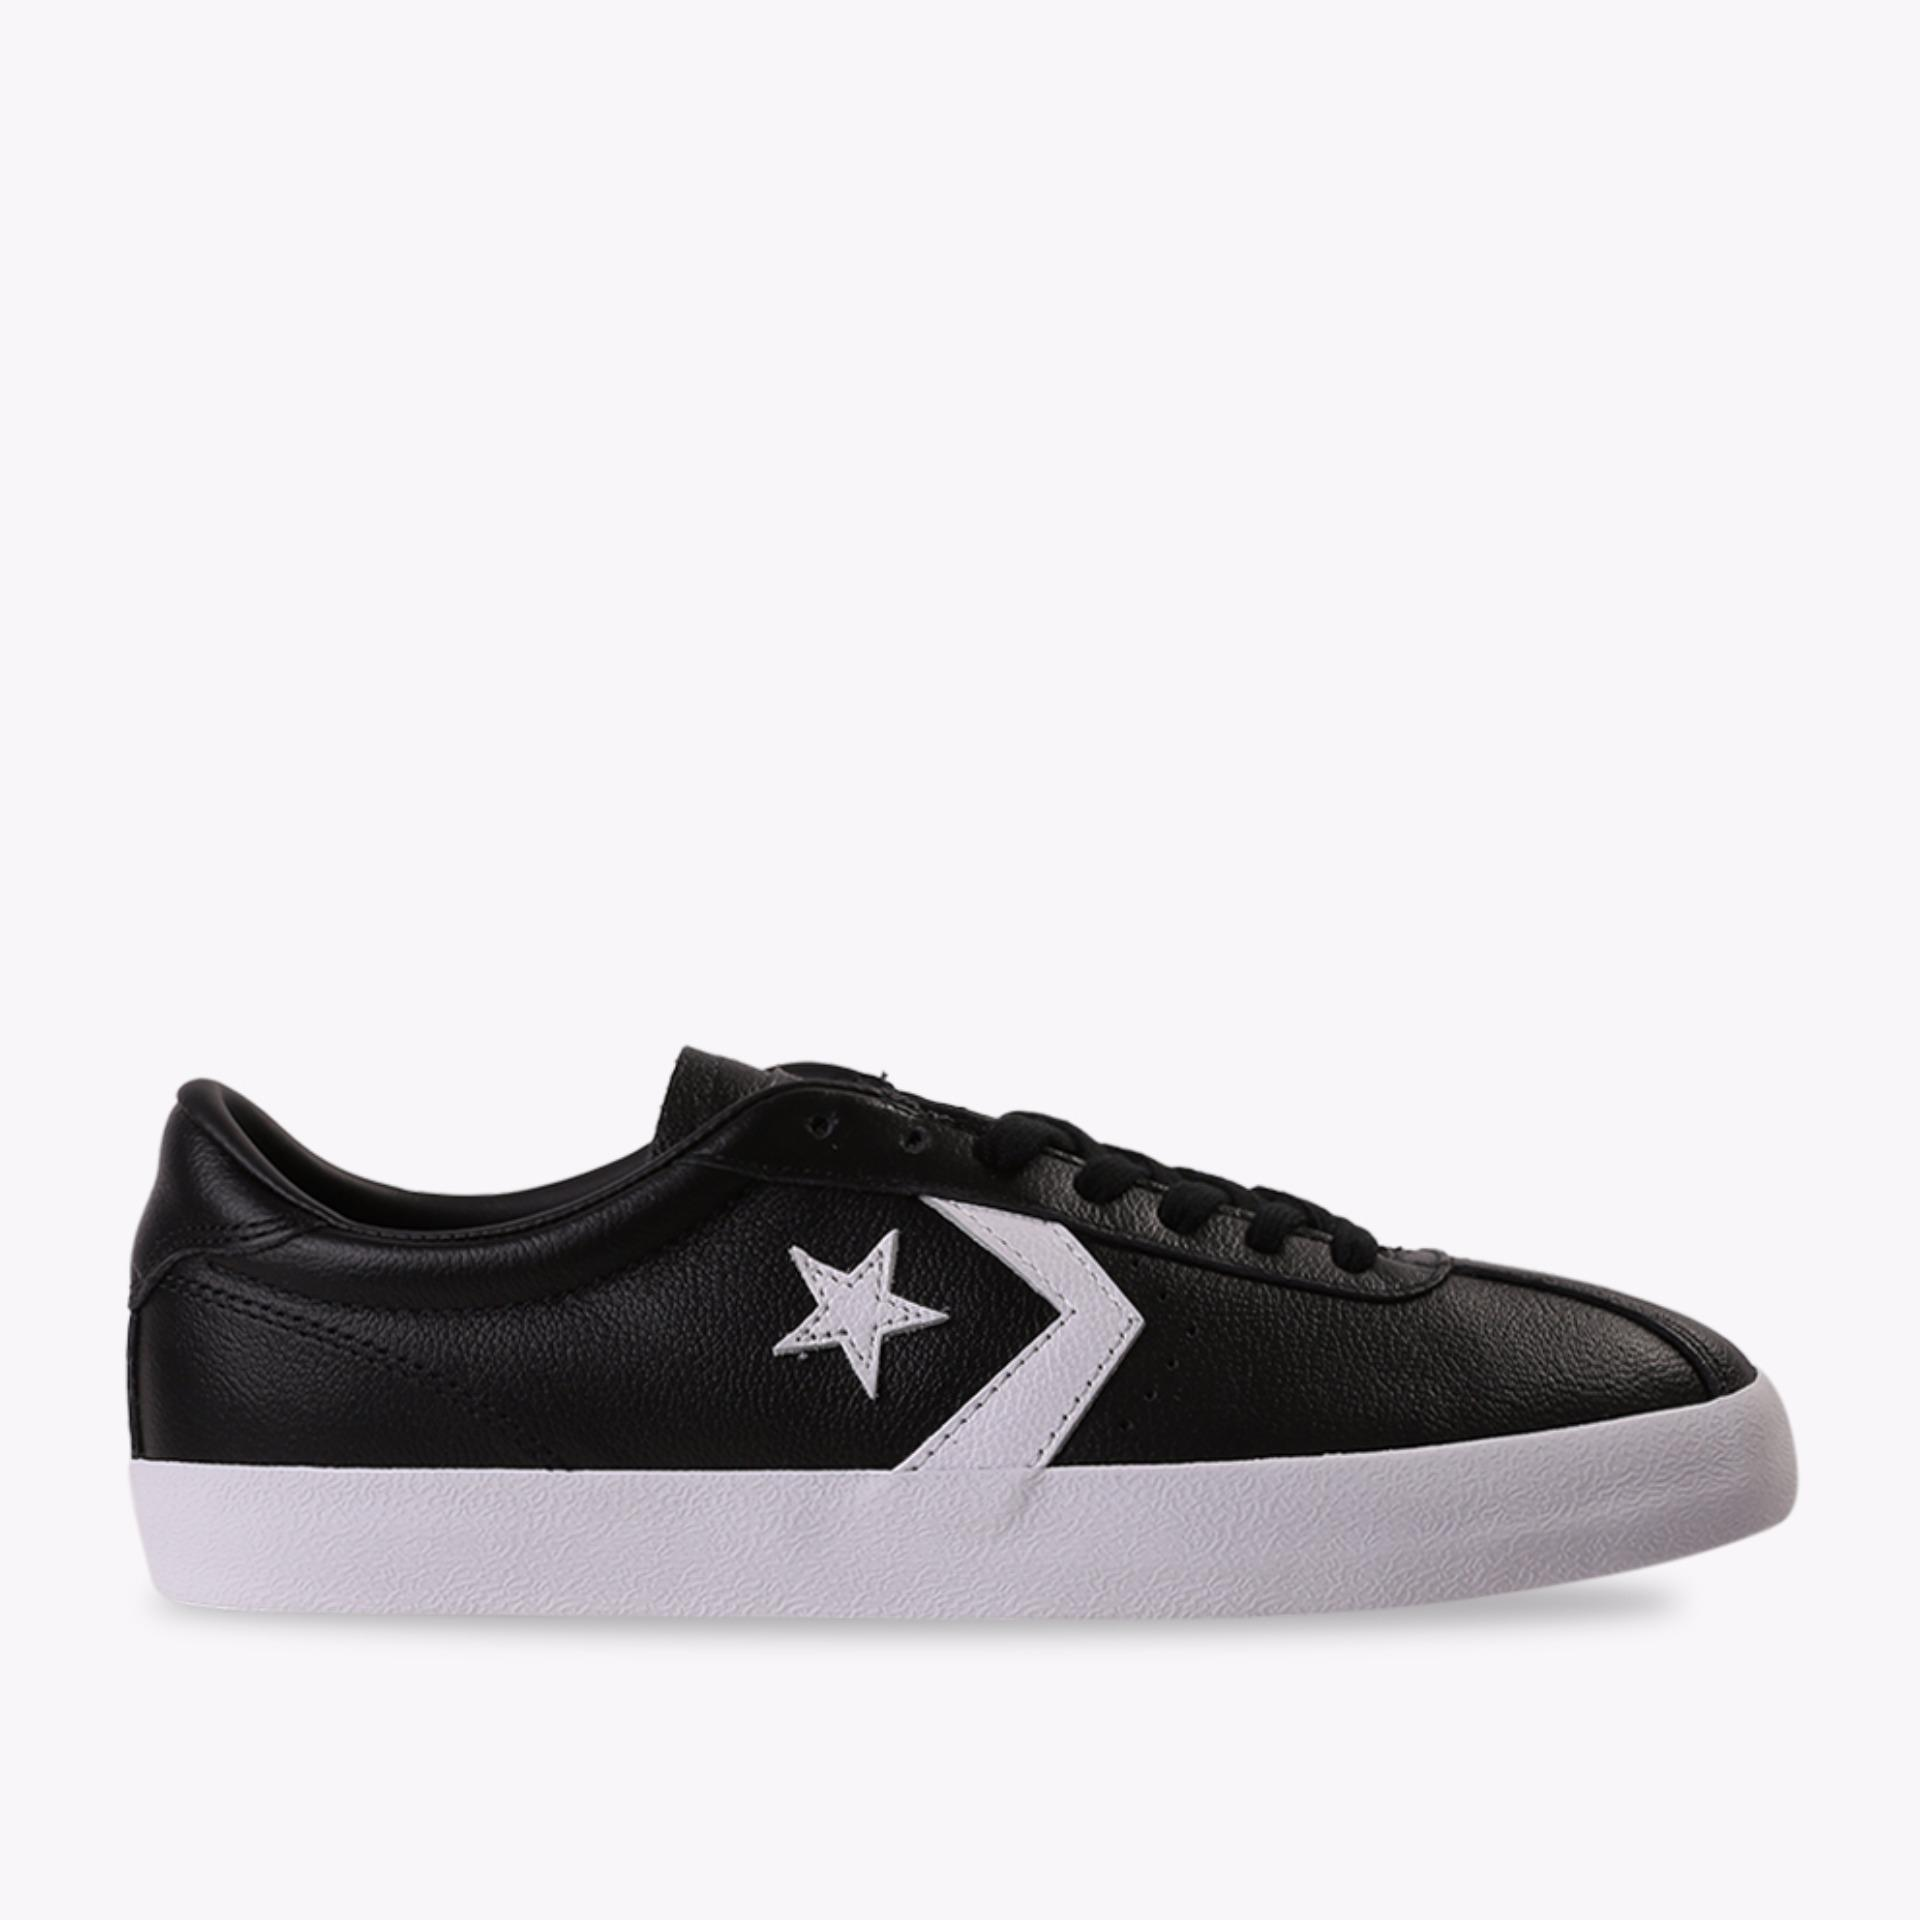 Beli Converse Breakpoint Leather Ox Men S Sneakers Shoes Hitam Converse Online